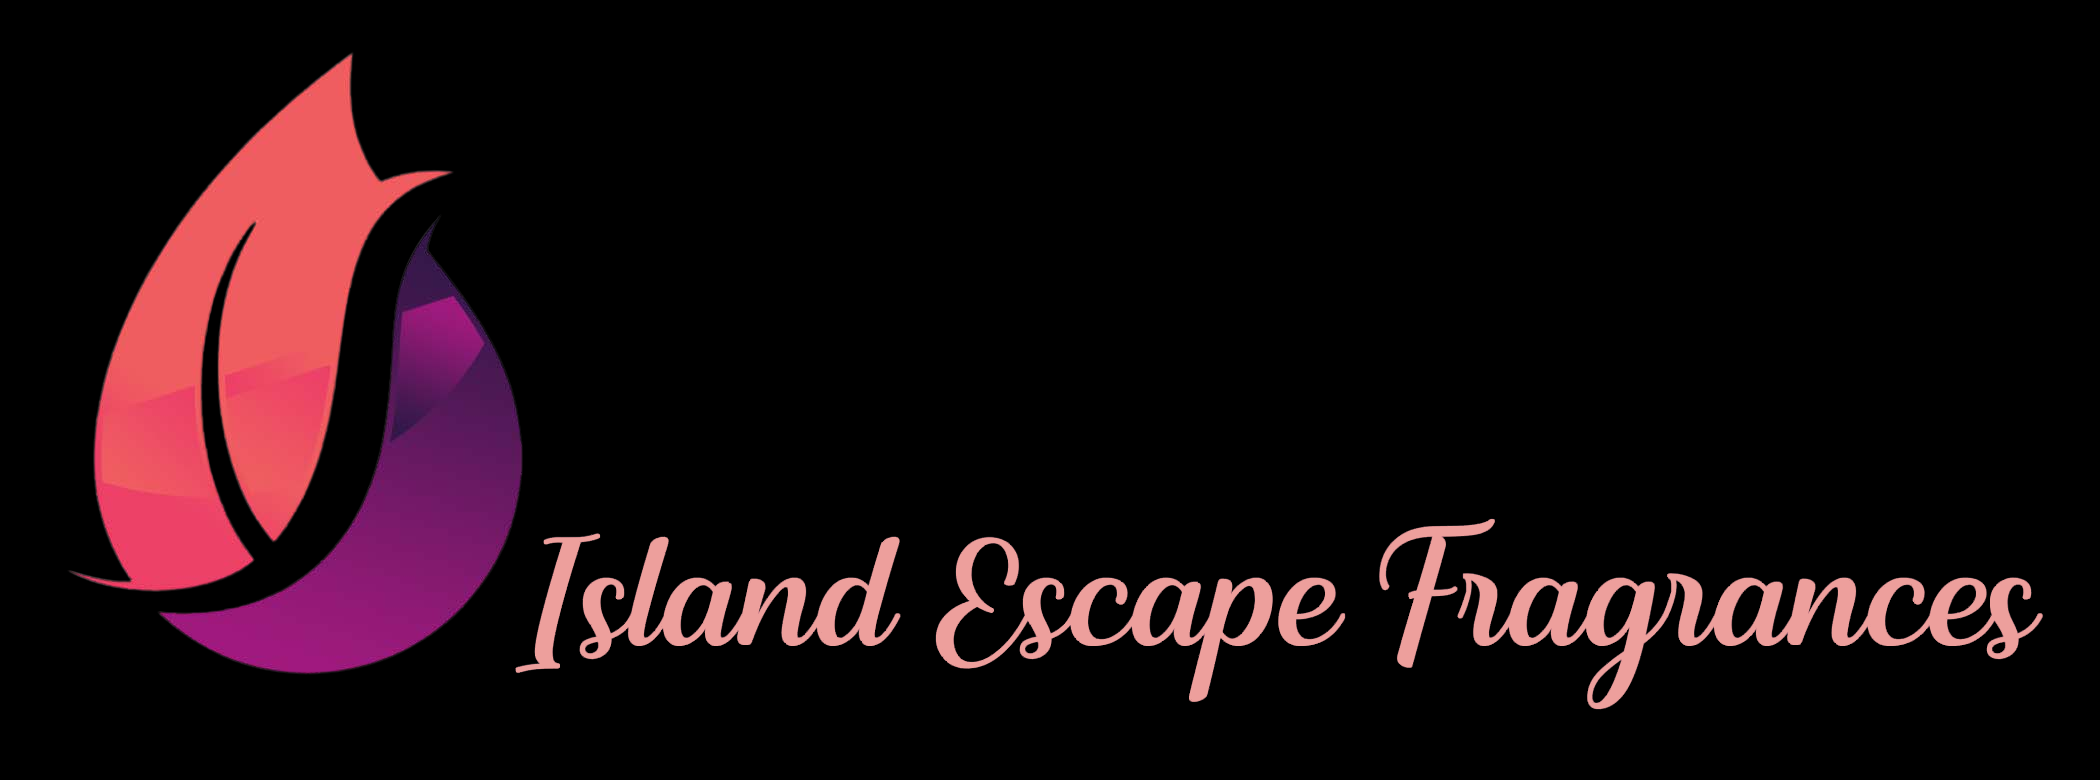 Island Escape Fragrances